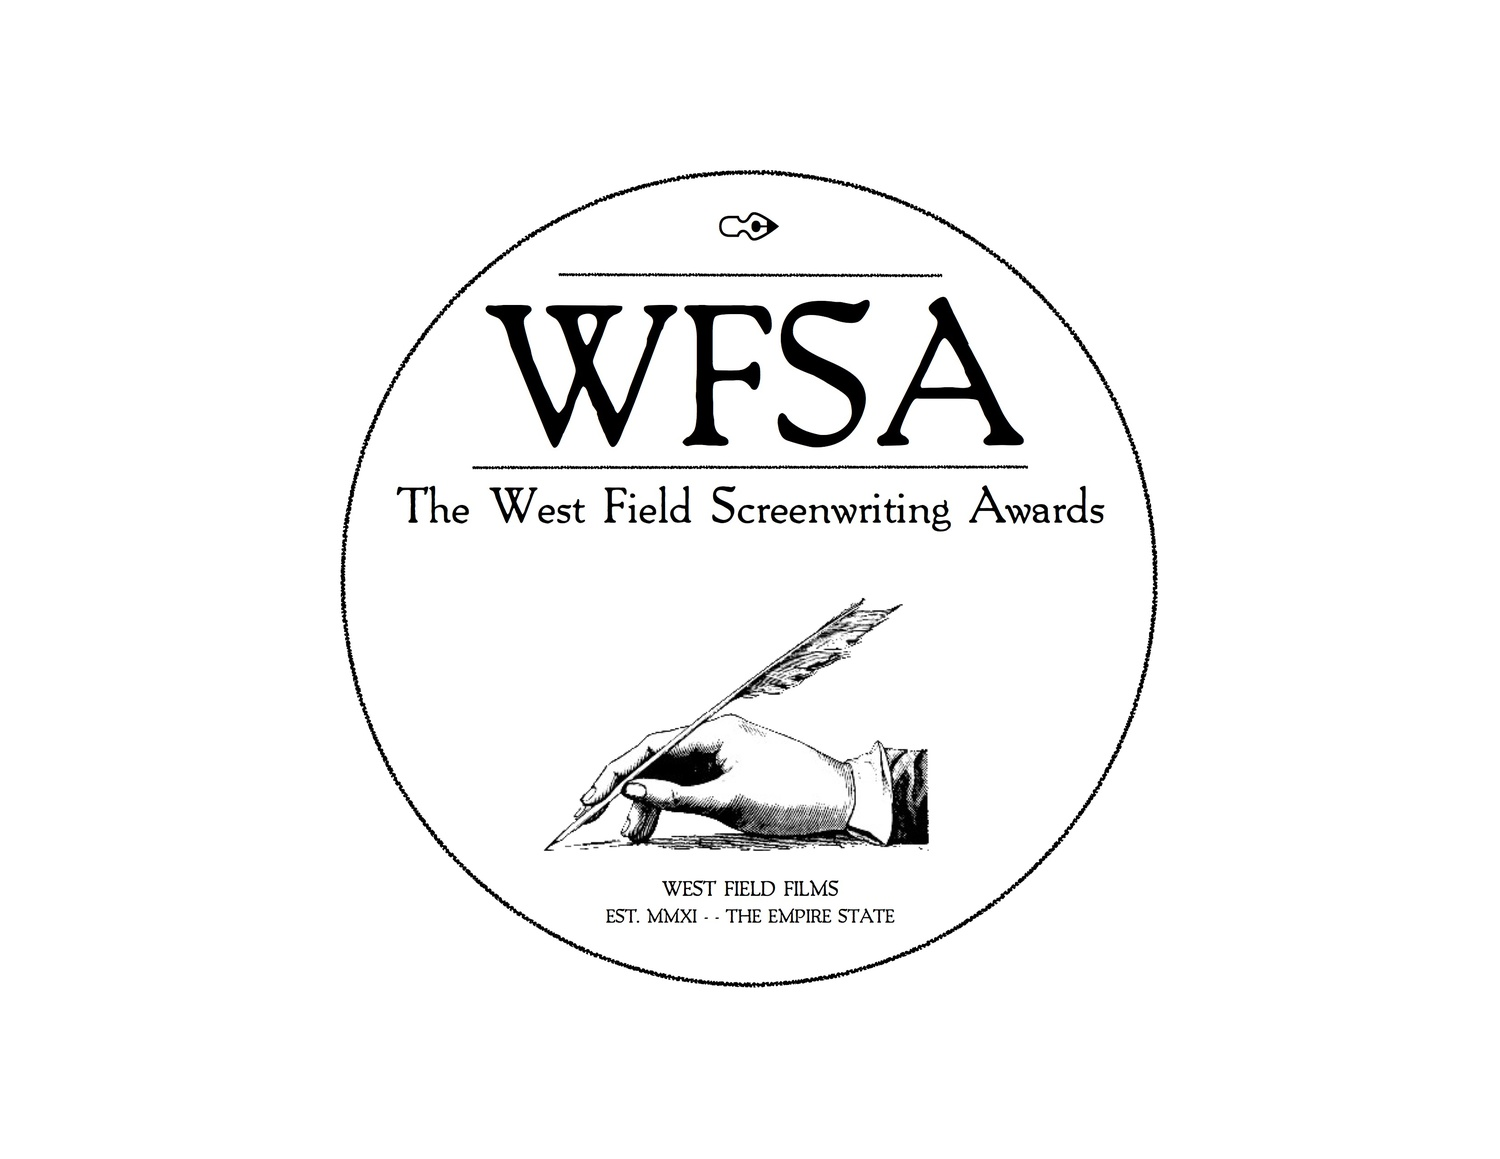 The West Field Screenwriting Awards